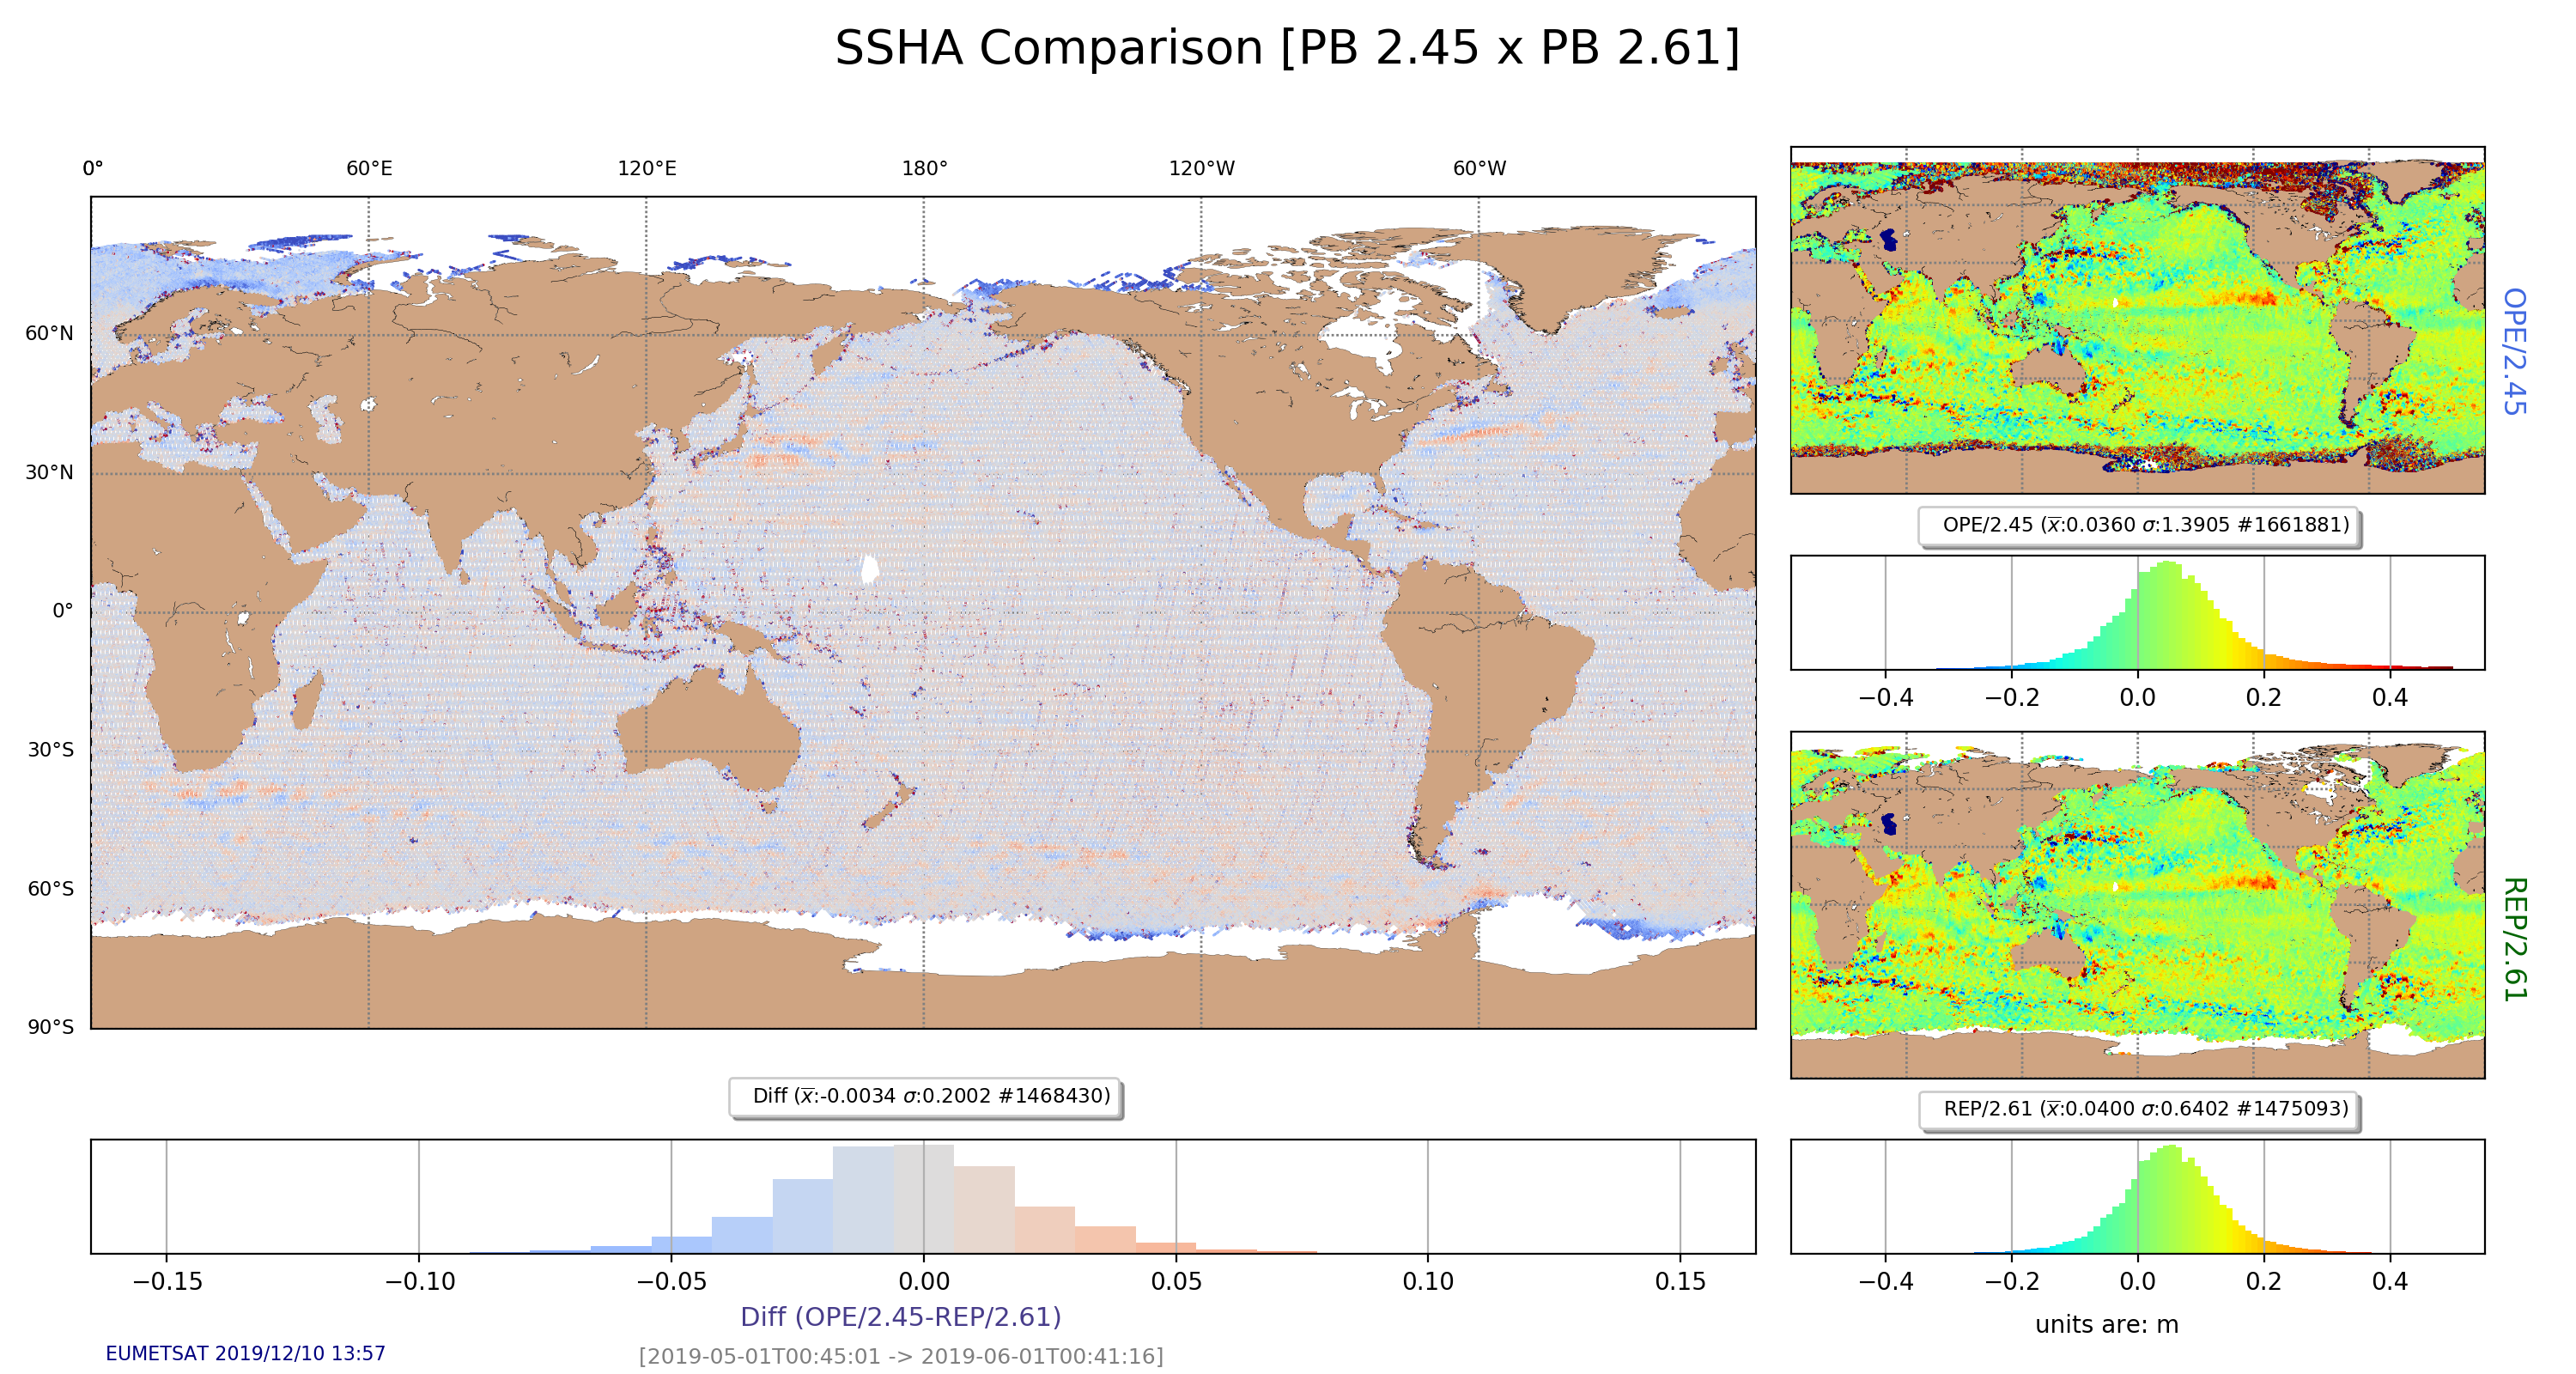 SSHA comparison between PB 2.45 (BC 003) and PB 2.61 (BC 004). No filtering has been applied to the data, just removed SSHA values larger than |0.5|m. The mean difference in the SSHA between these two baseline collections is of 3 mm, mostly in the zones above 60 degrees of latitude, North and South.